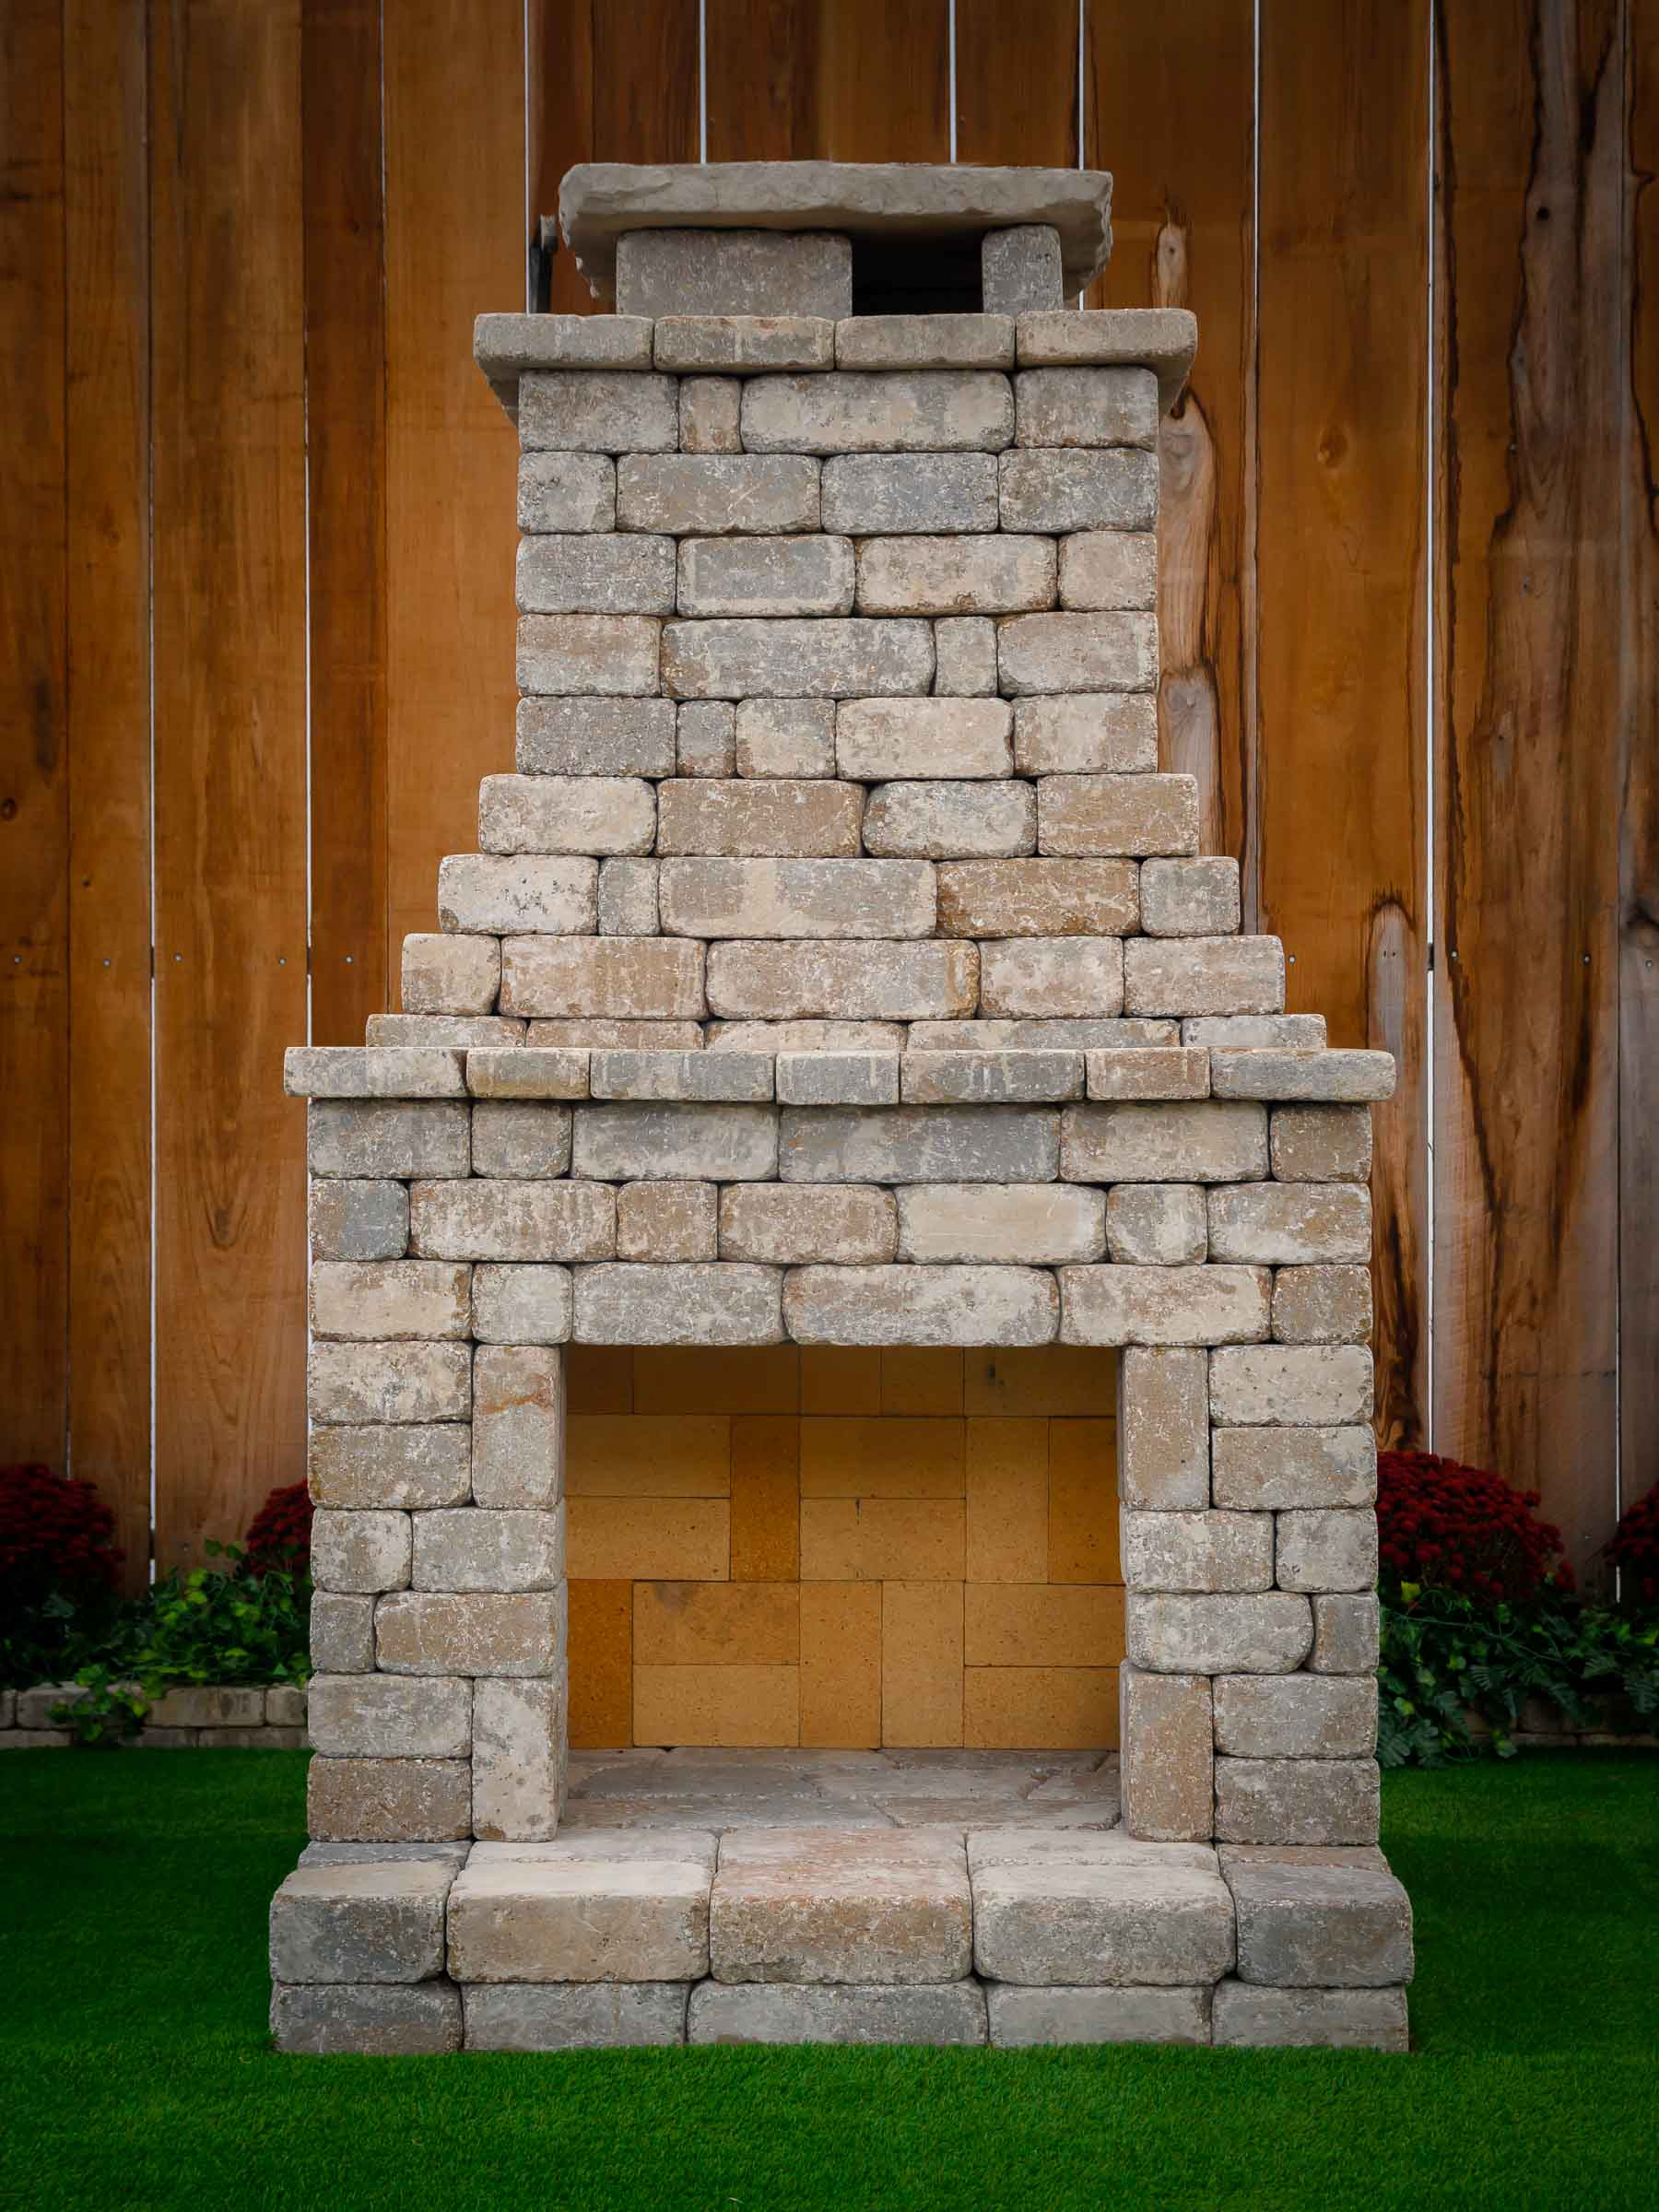 Build Your Own Outdoor Fireplace Kit | MyCoffeepot.Org on Simple Outdoor Brick Fireplace id=77761